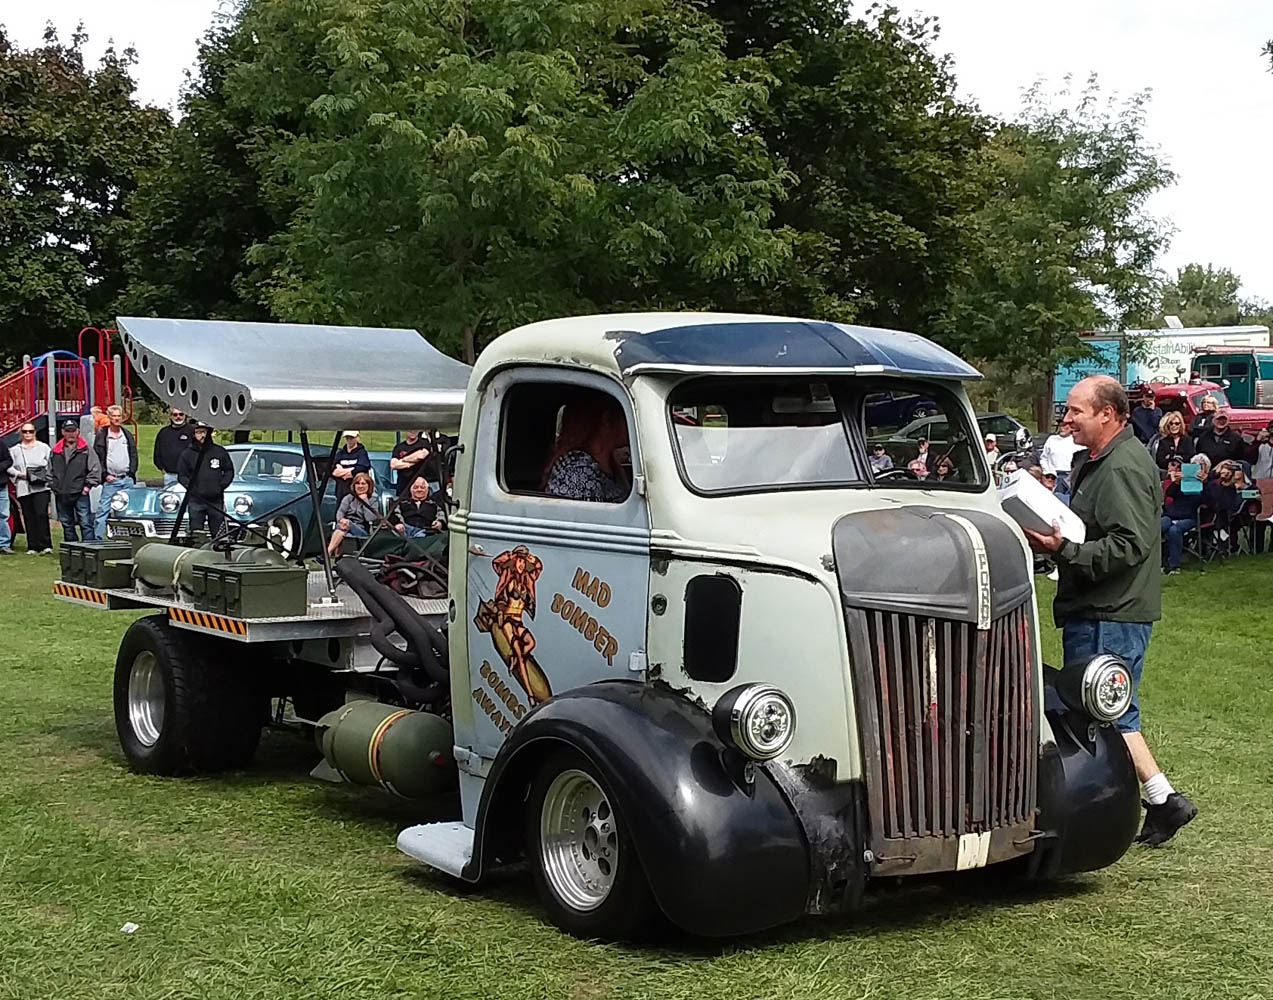 Top 25- 1957 Ford COE, Rick Duvall 1